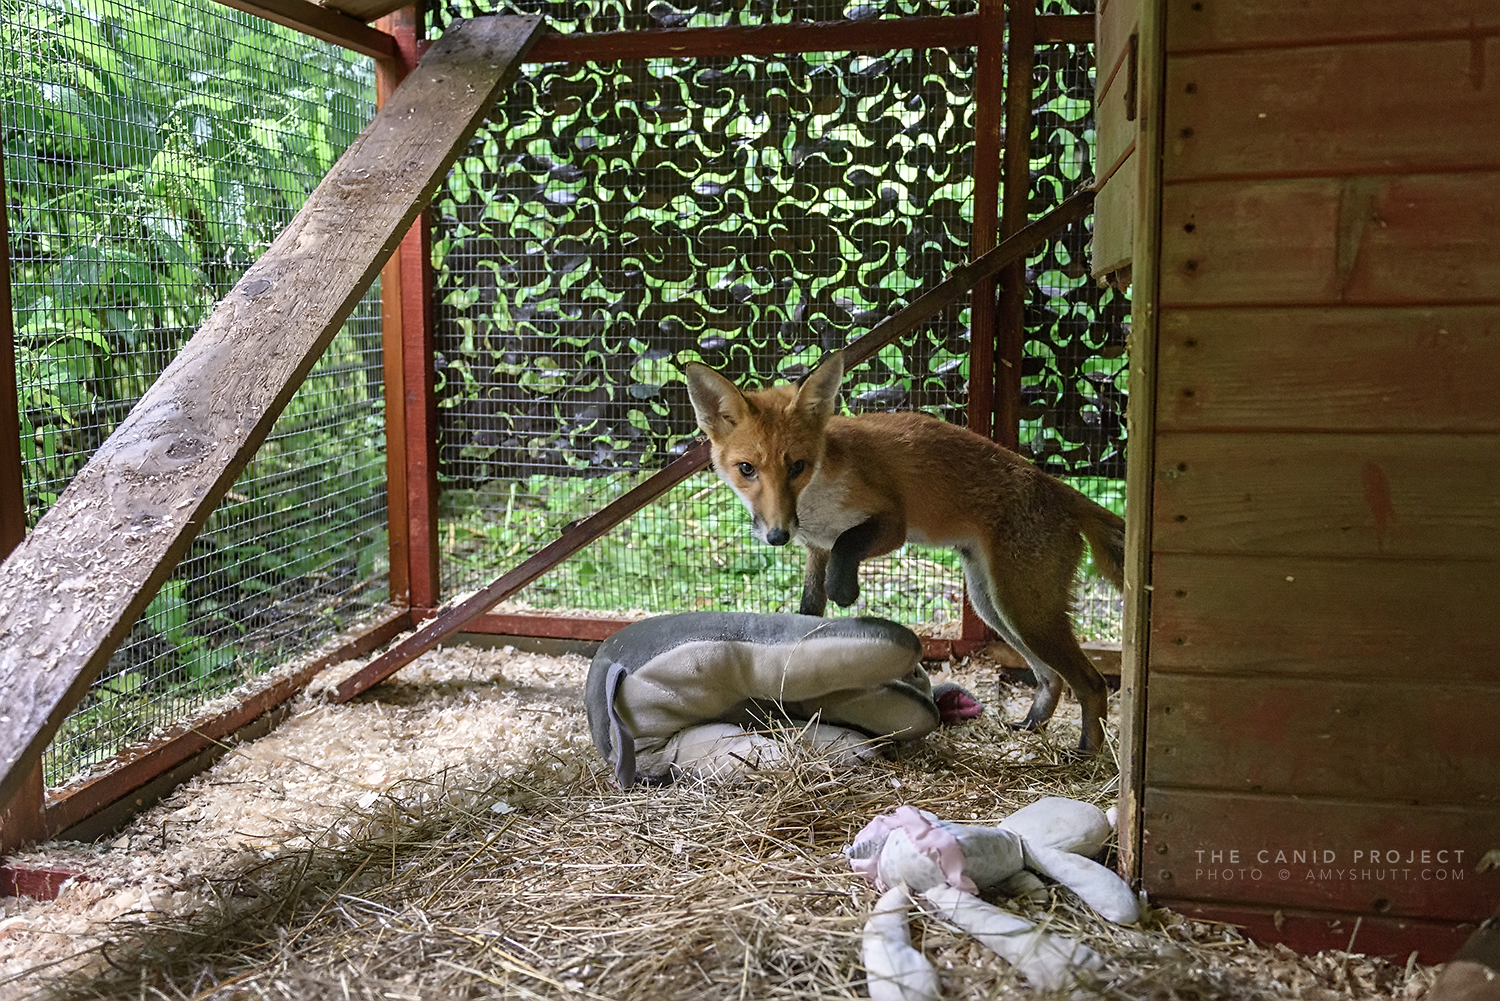 Inside a cub enclosure